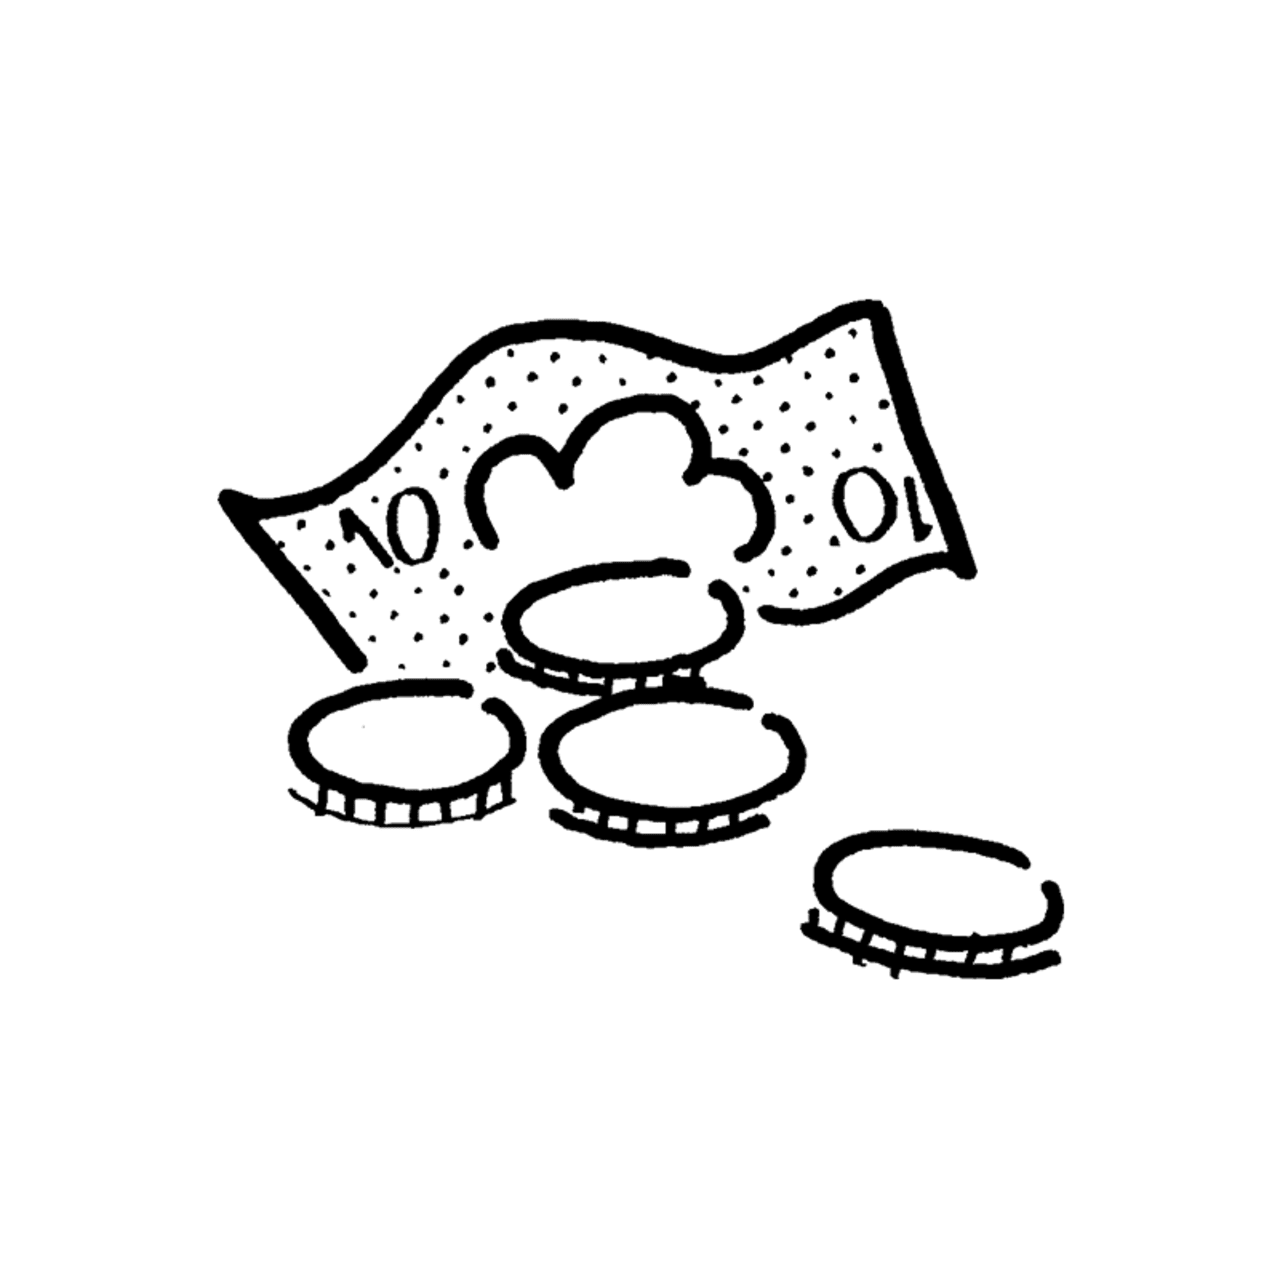 coins and paper money illustration